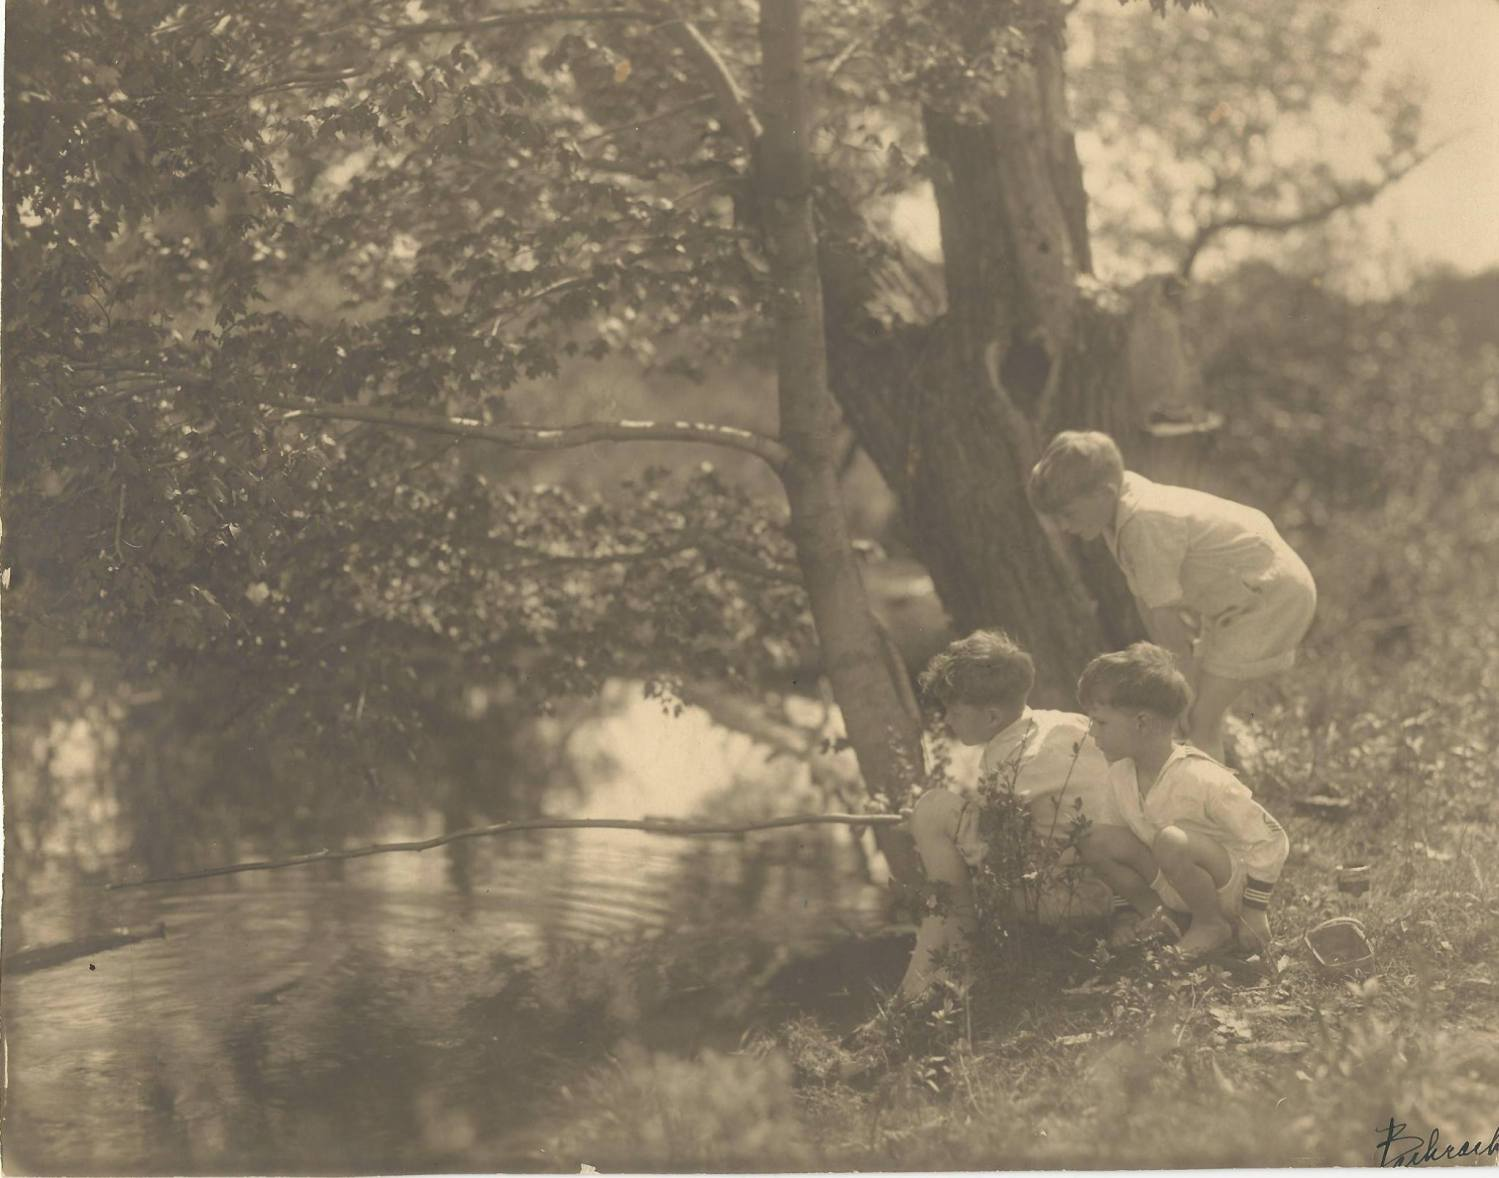 The three Burns boys fishing near Kent Cottage c. 1926